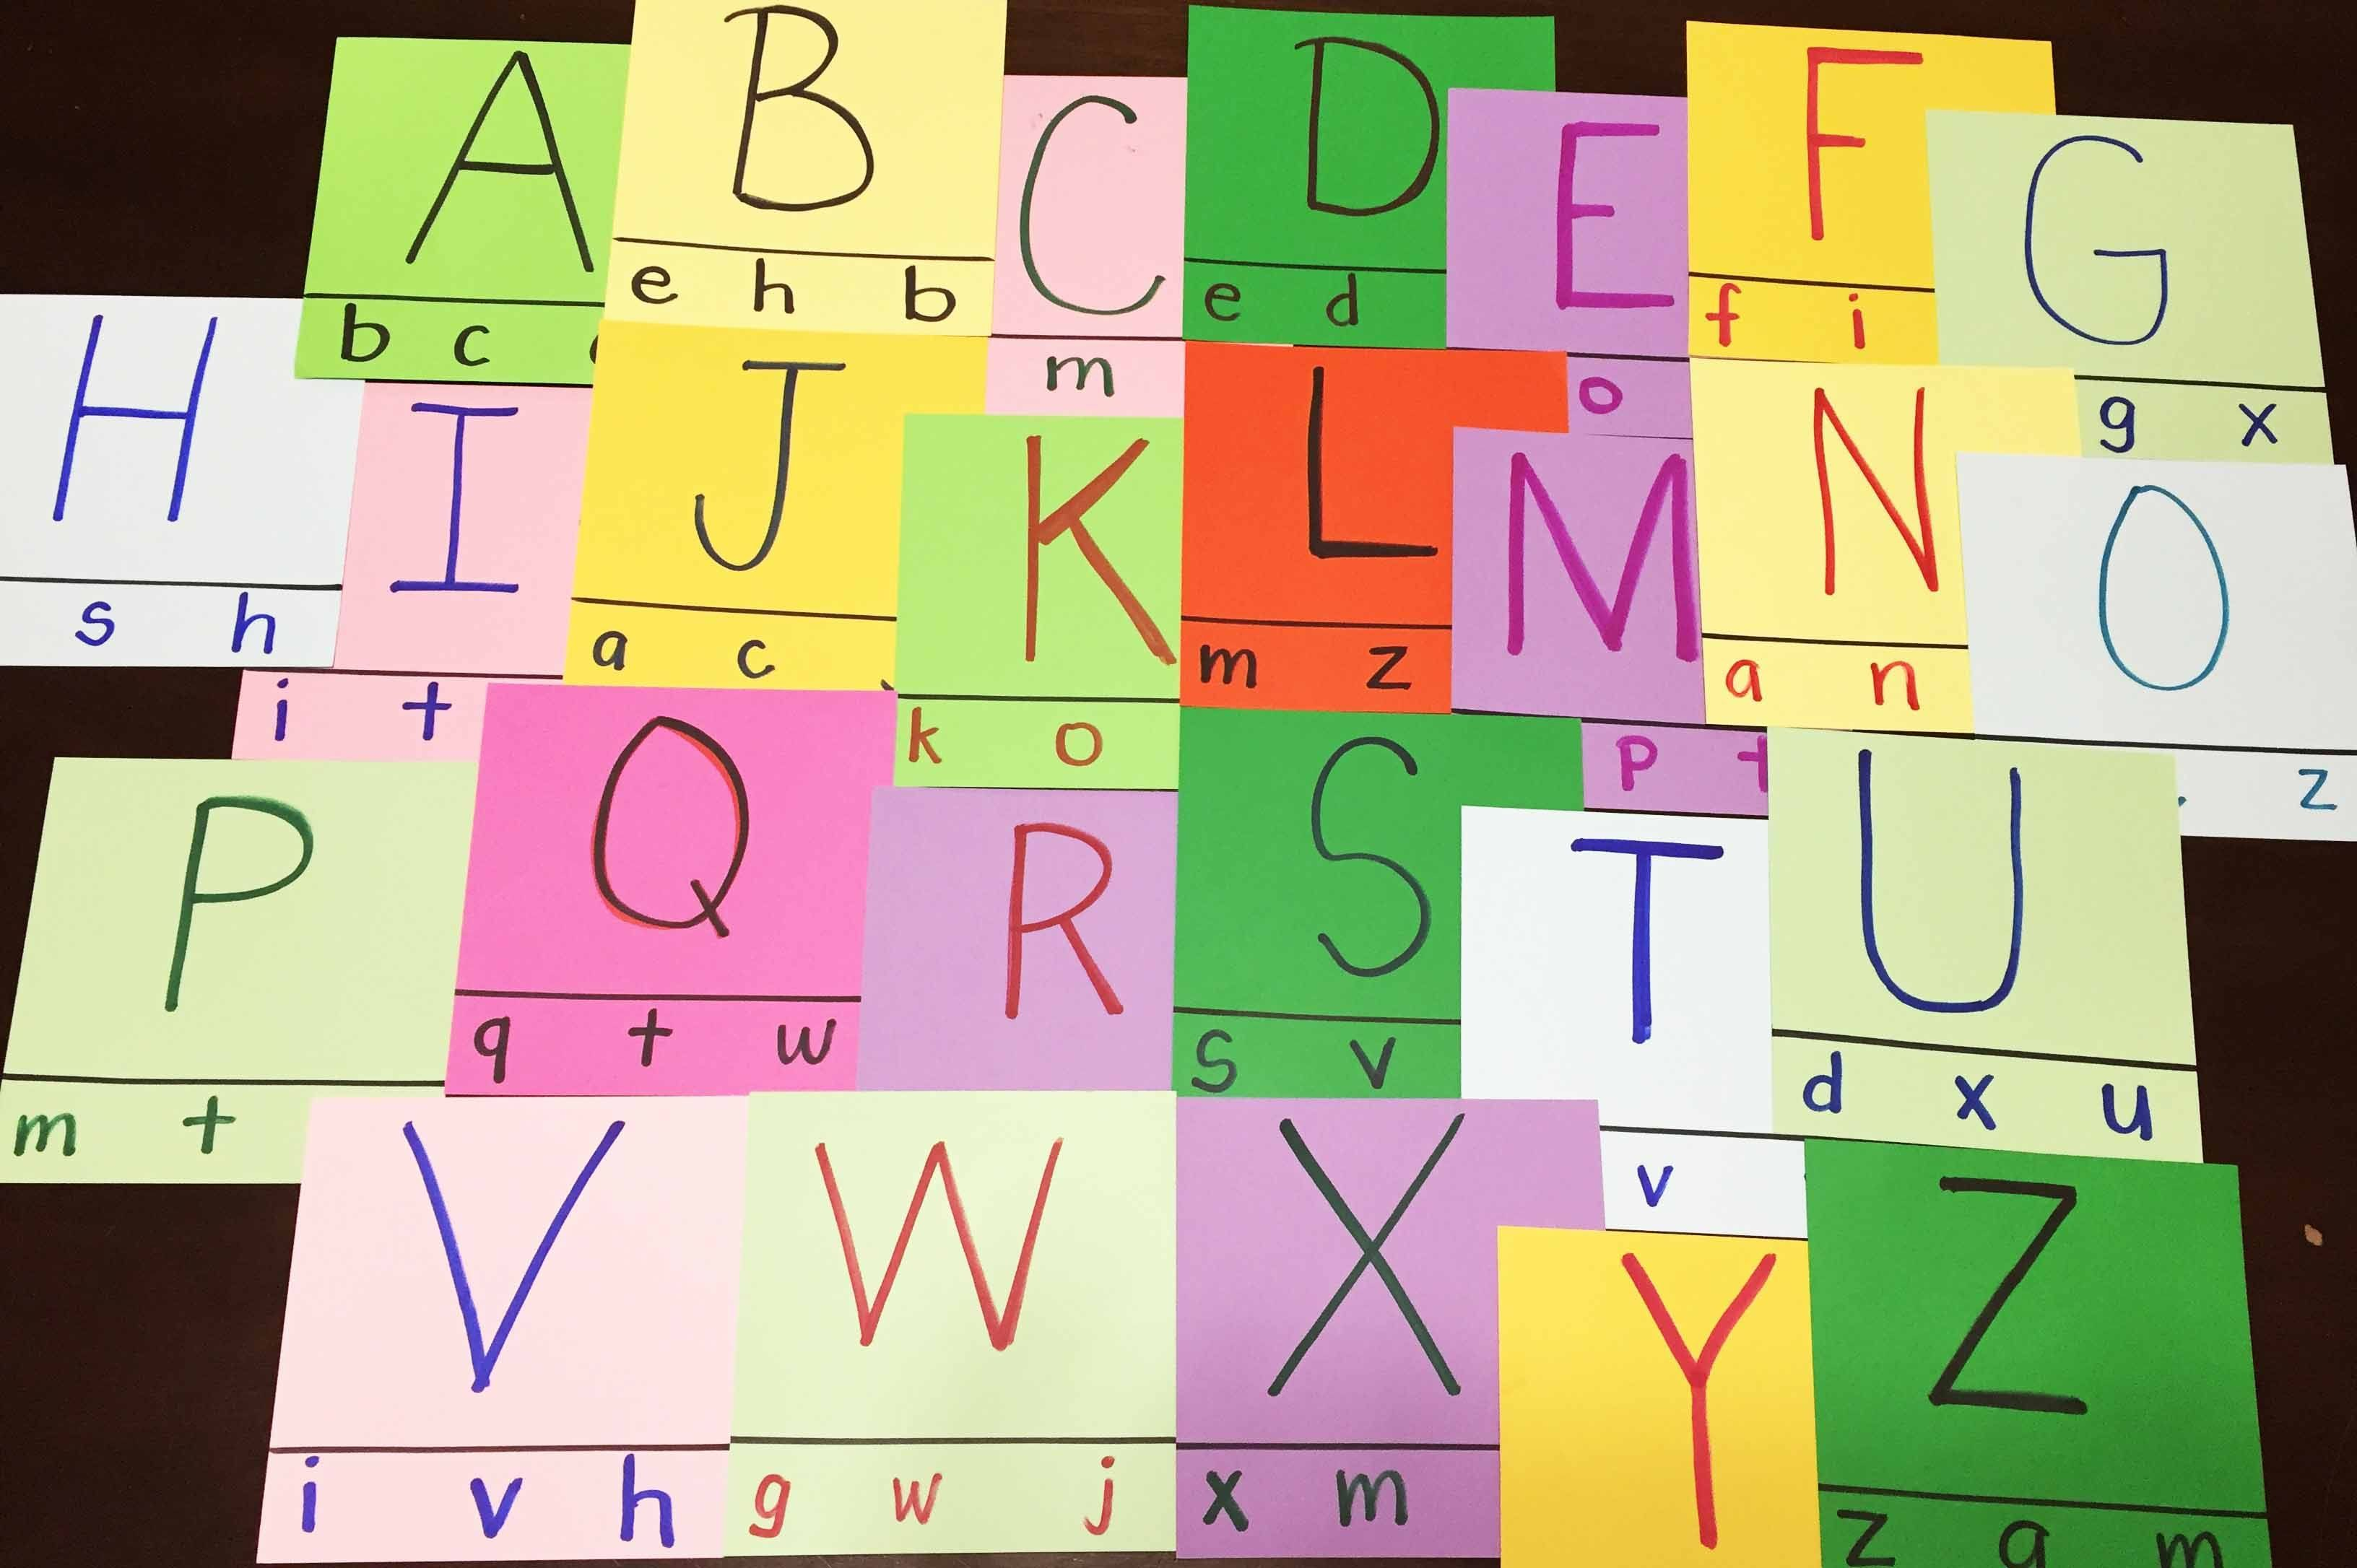 Abc Matching Game Upper Case Letter To Lowercase Letter